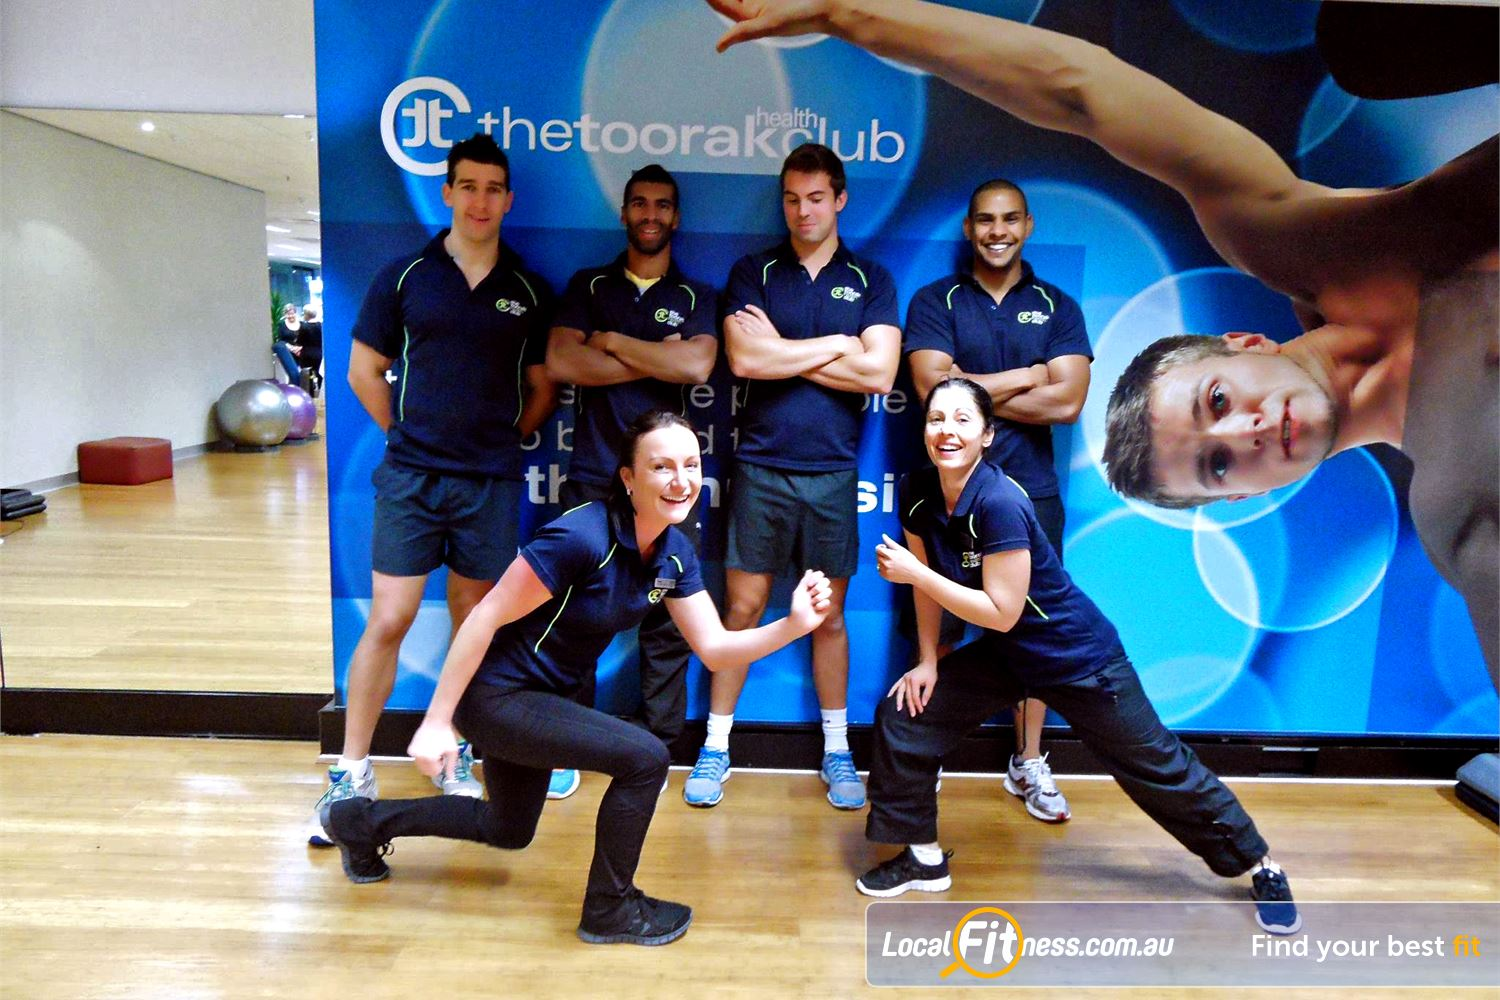 The Toorak Health Club Toorak Our experienced staff are ready to help you reach your fitness goals.